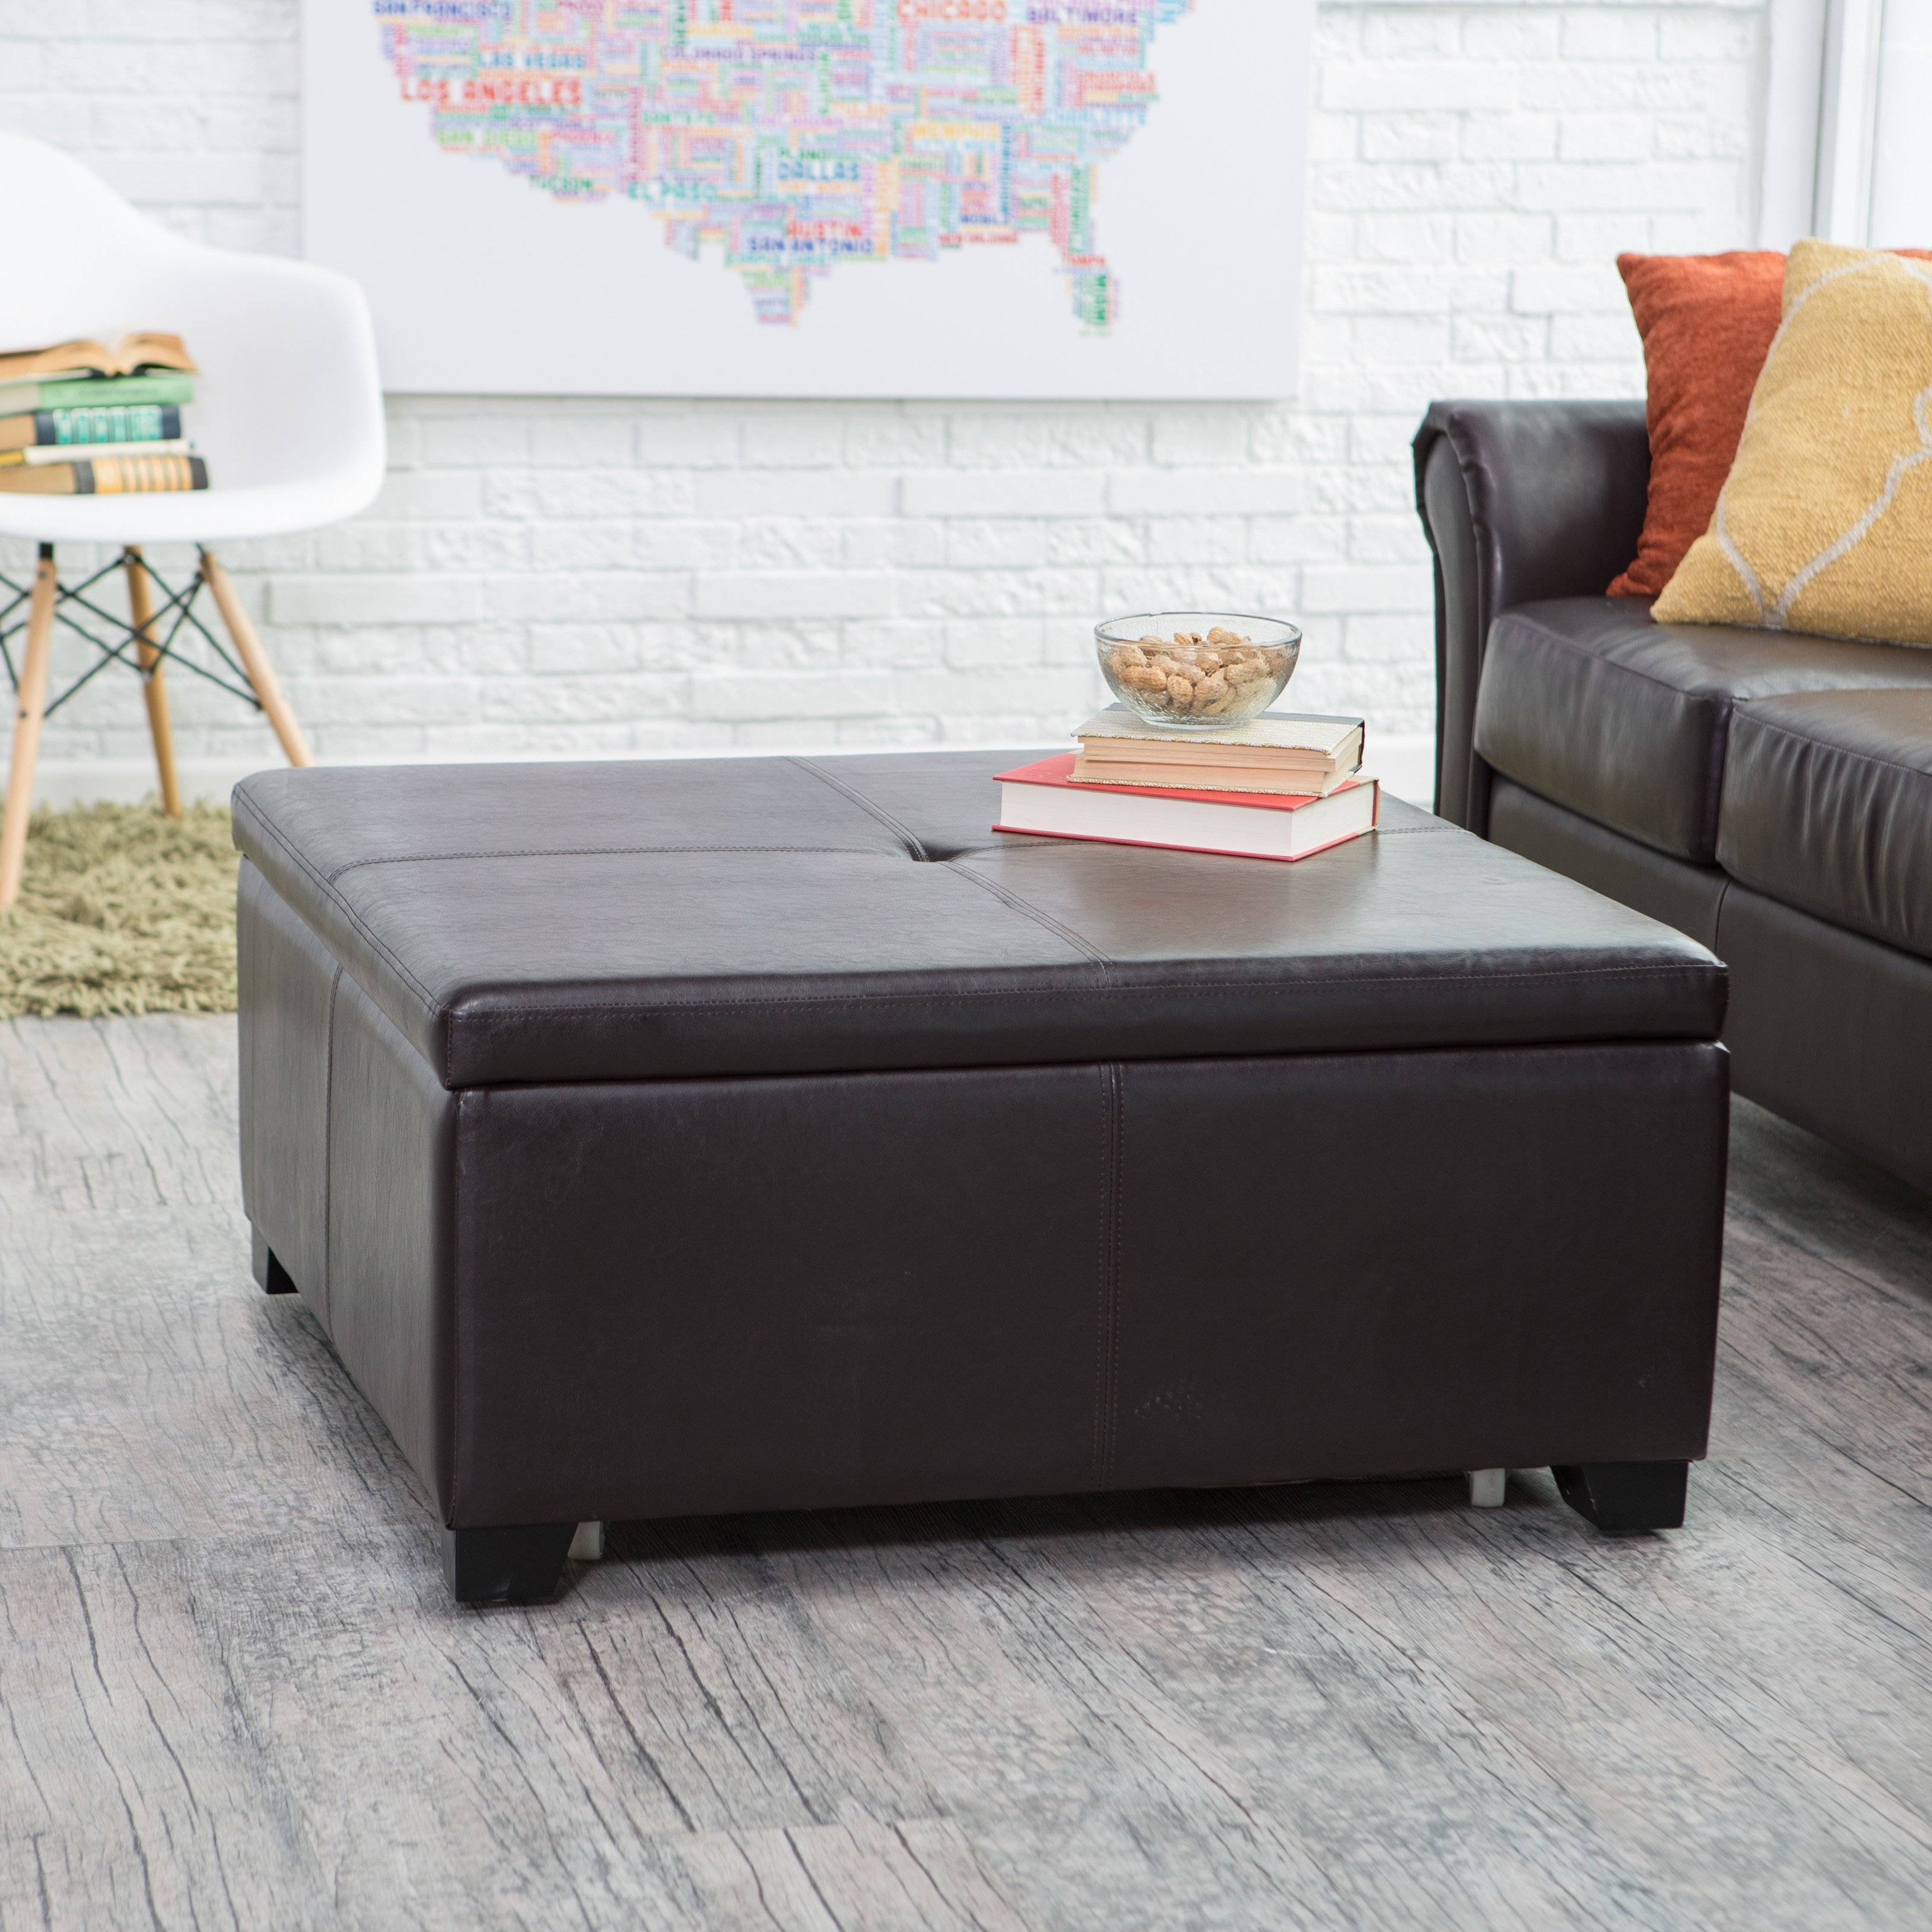 Brown Leather Coffee Table Storage Ottoman | Coffee Tables Decoration inside Brown Leather Ottoman Coffee Tables With Storages (Image 7 of 30)